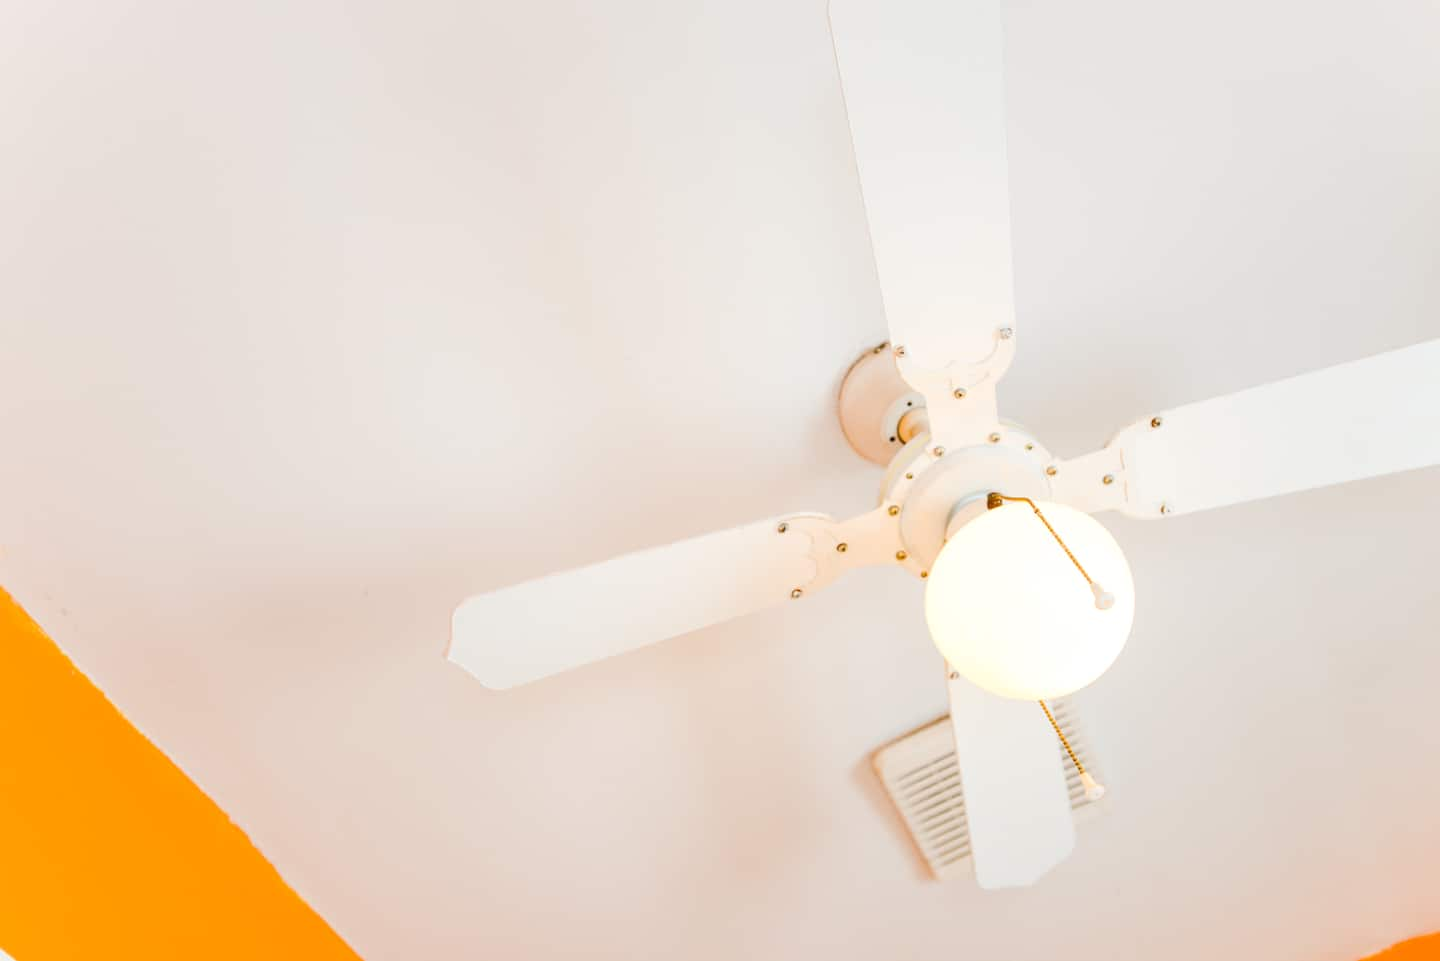 nami cleaner ceiling dimensions products d w cm ceilingfan home f fan dimension h x inch product panasonic